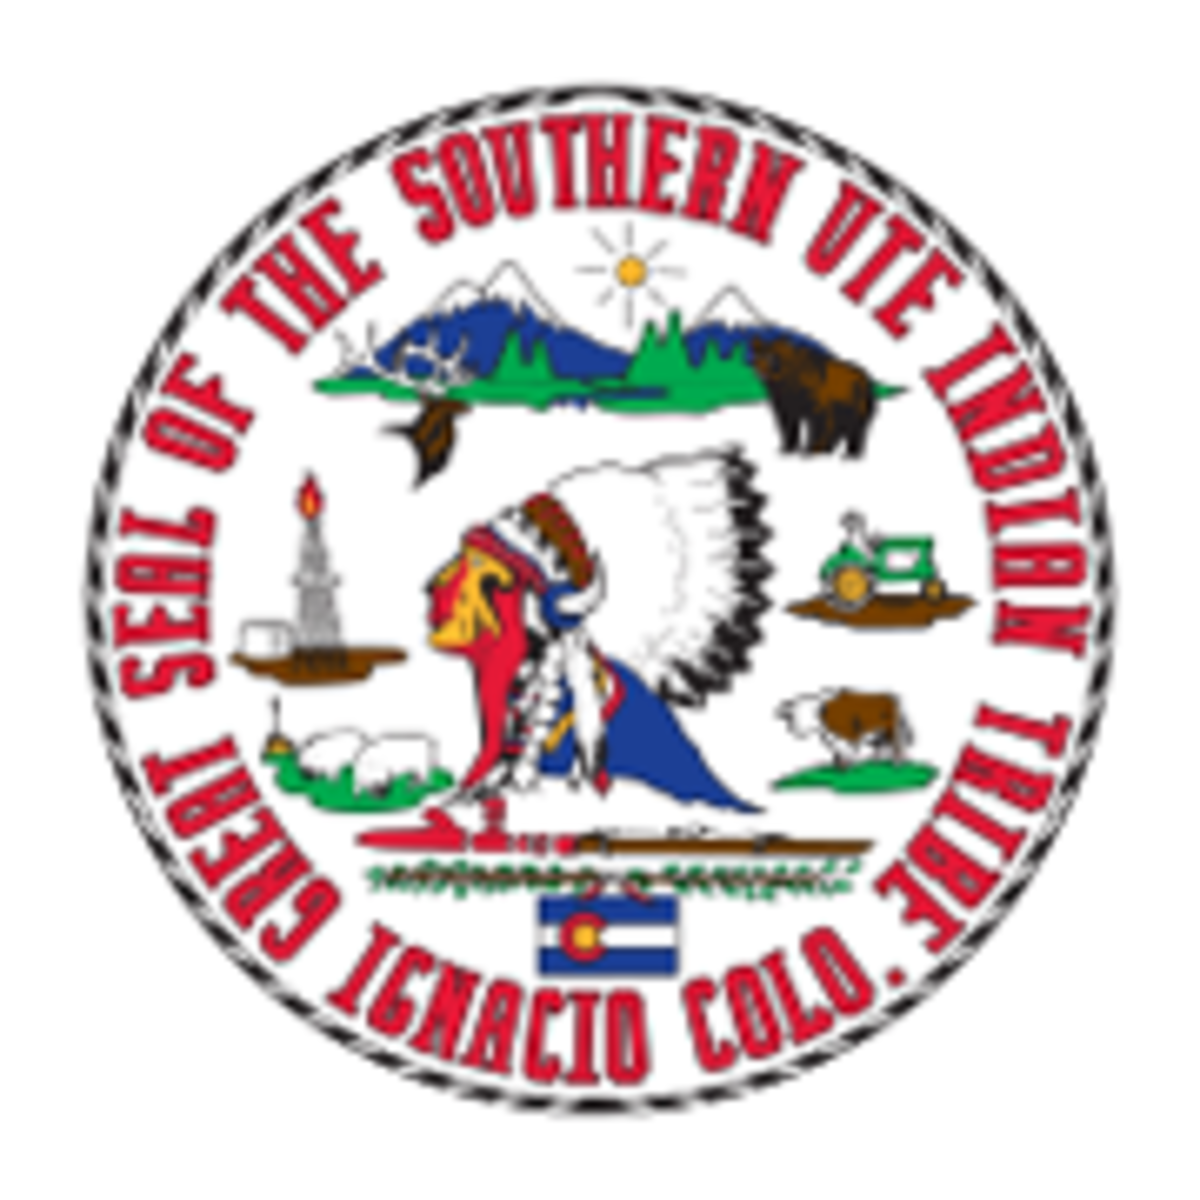 Southern Ute Indian Tribe - seal